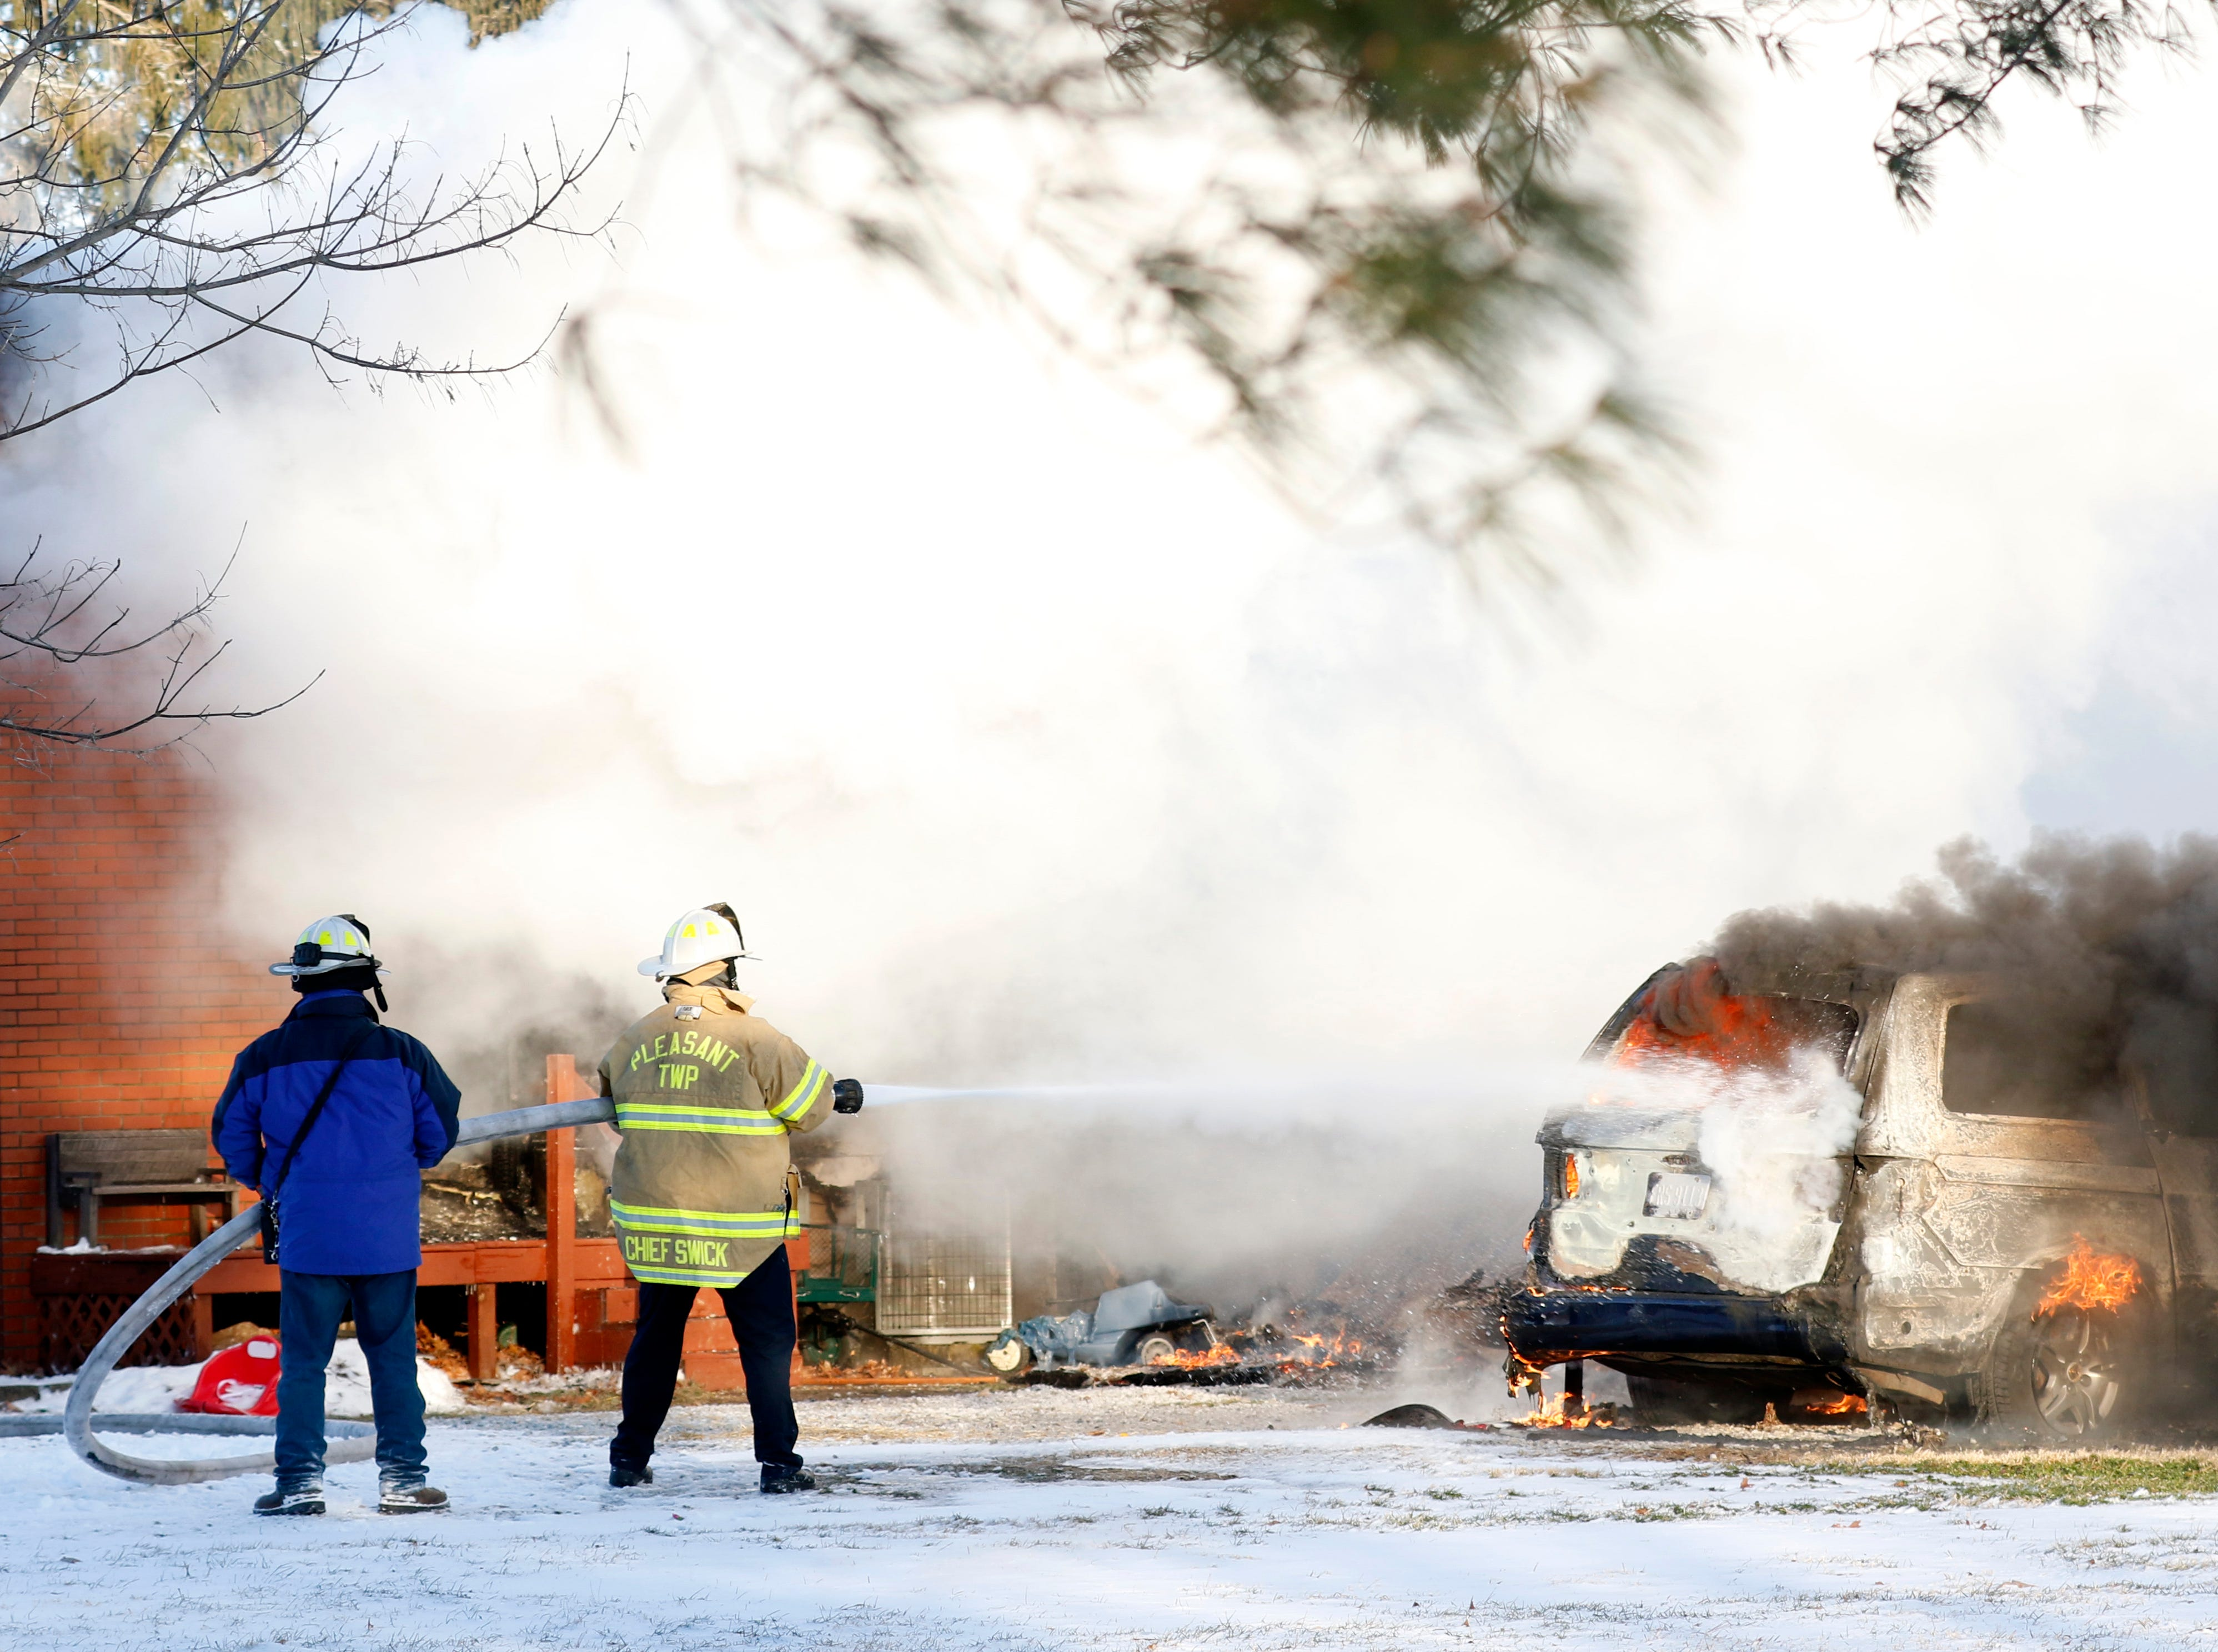 Pleasant Township Fire Department Asst. Chief Ralph Swick and Millersport Fire Chief Bob Price spray water on a burning vehicle Wednesday morning, Jan. 30, 2019, at 9640 Old Rushville Road in Rushcreek Township. Bremen-Rushcreek Township Fire Chief William Duvall said the fire started in the home's garage, burning it to the ground, and spreading into the home itself. Duvall said the home, garage and several vehicles were total losses. No one was injured in the fire.